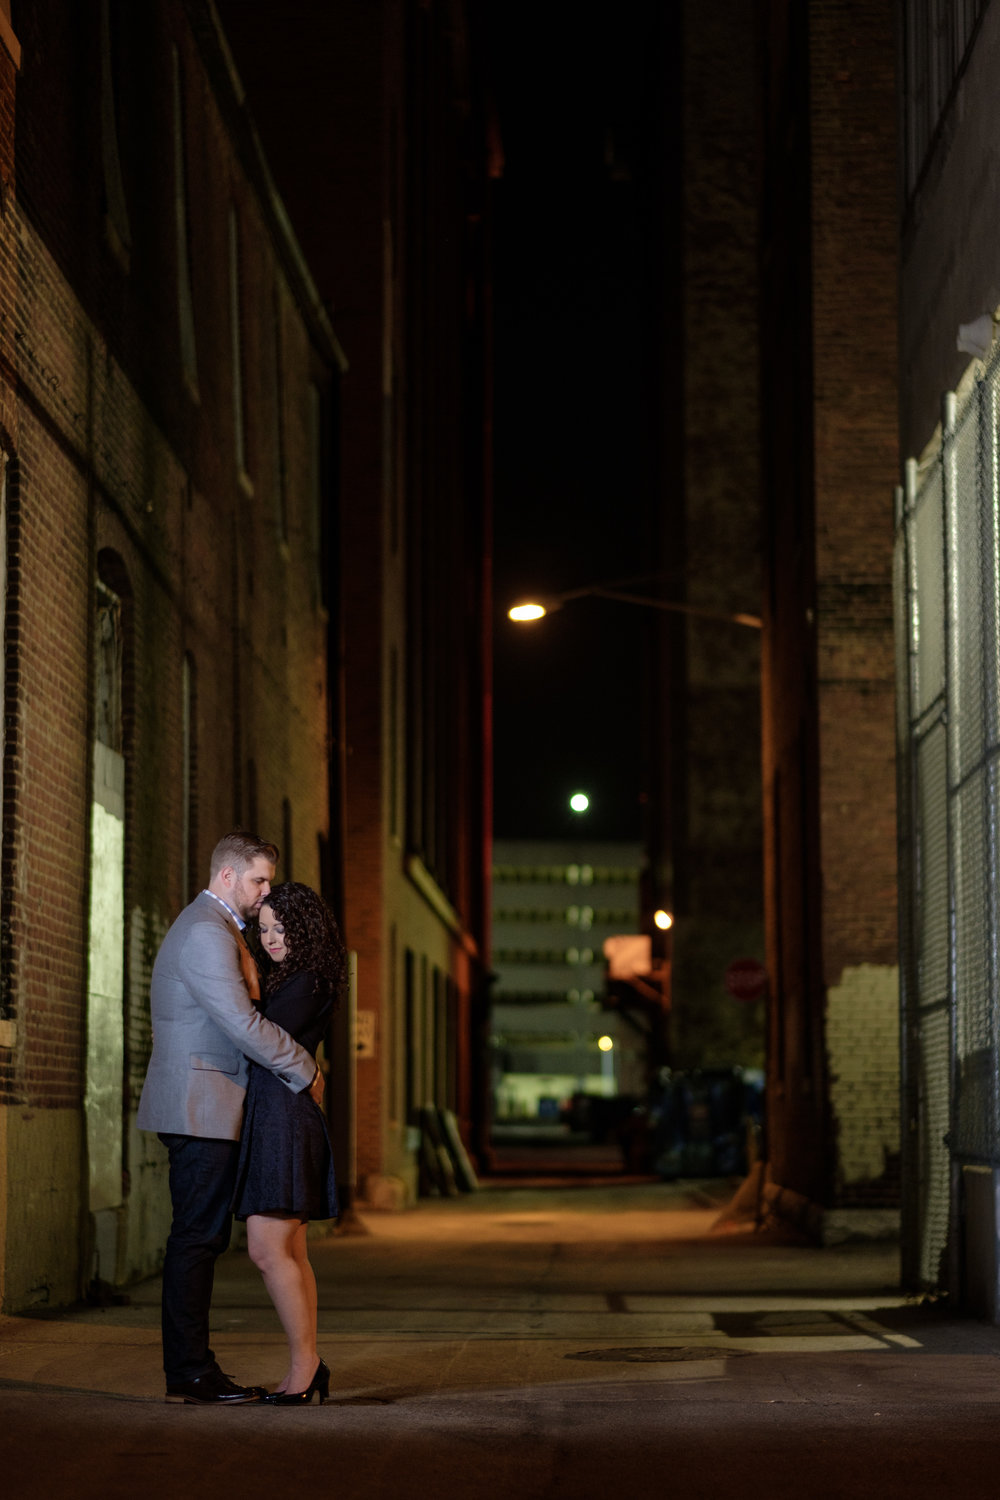 Downtown-Indianapolis-night-engagement-pictures-20.jpg